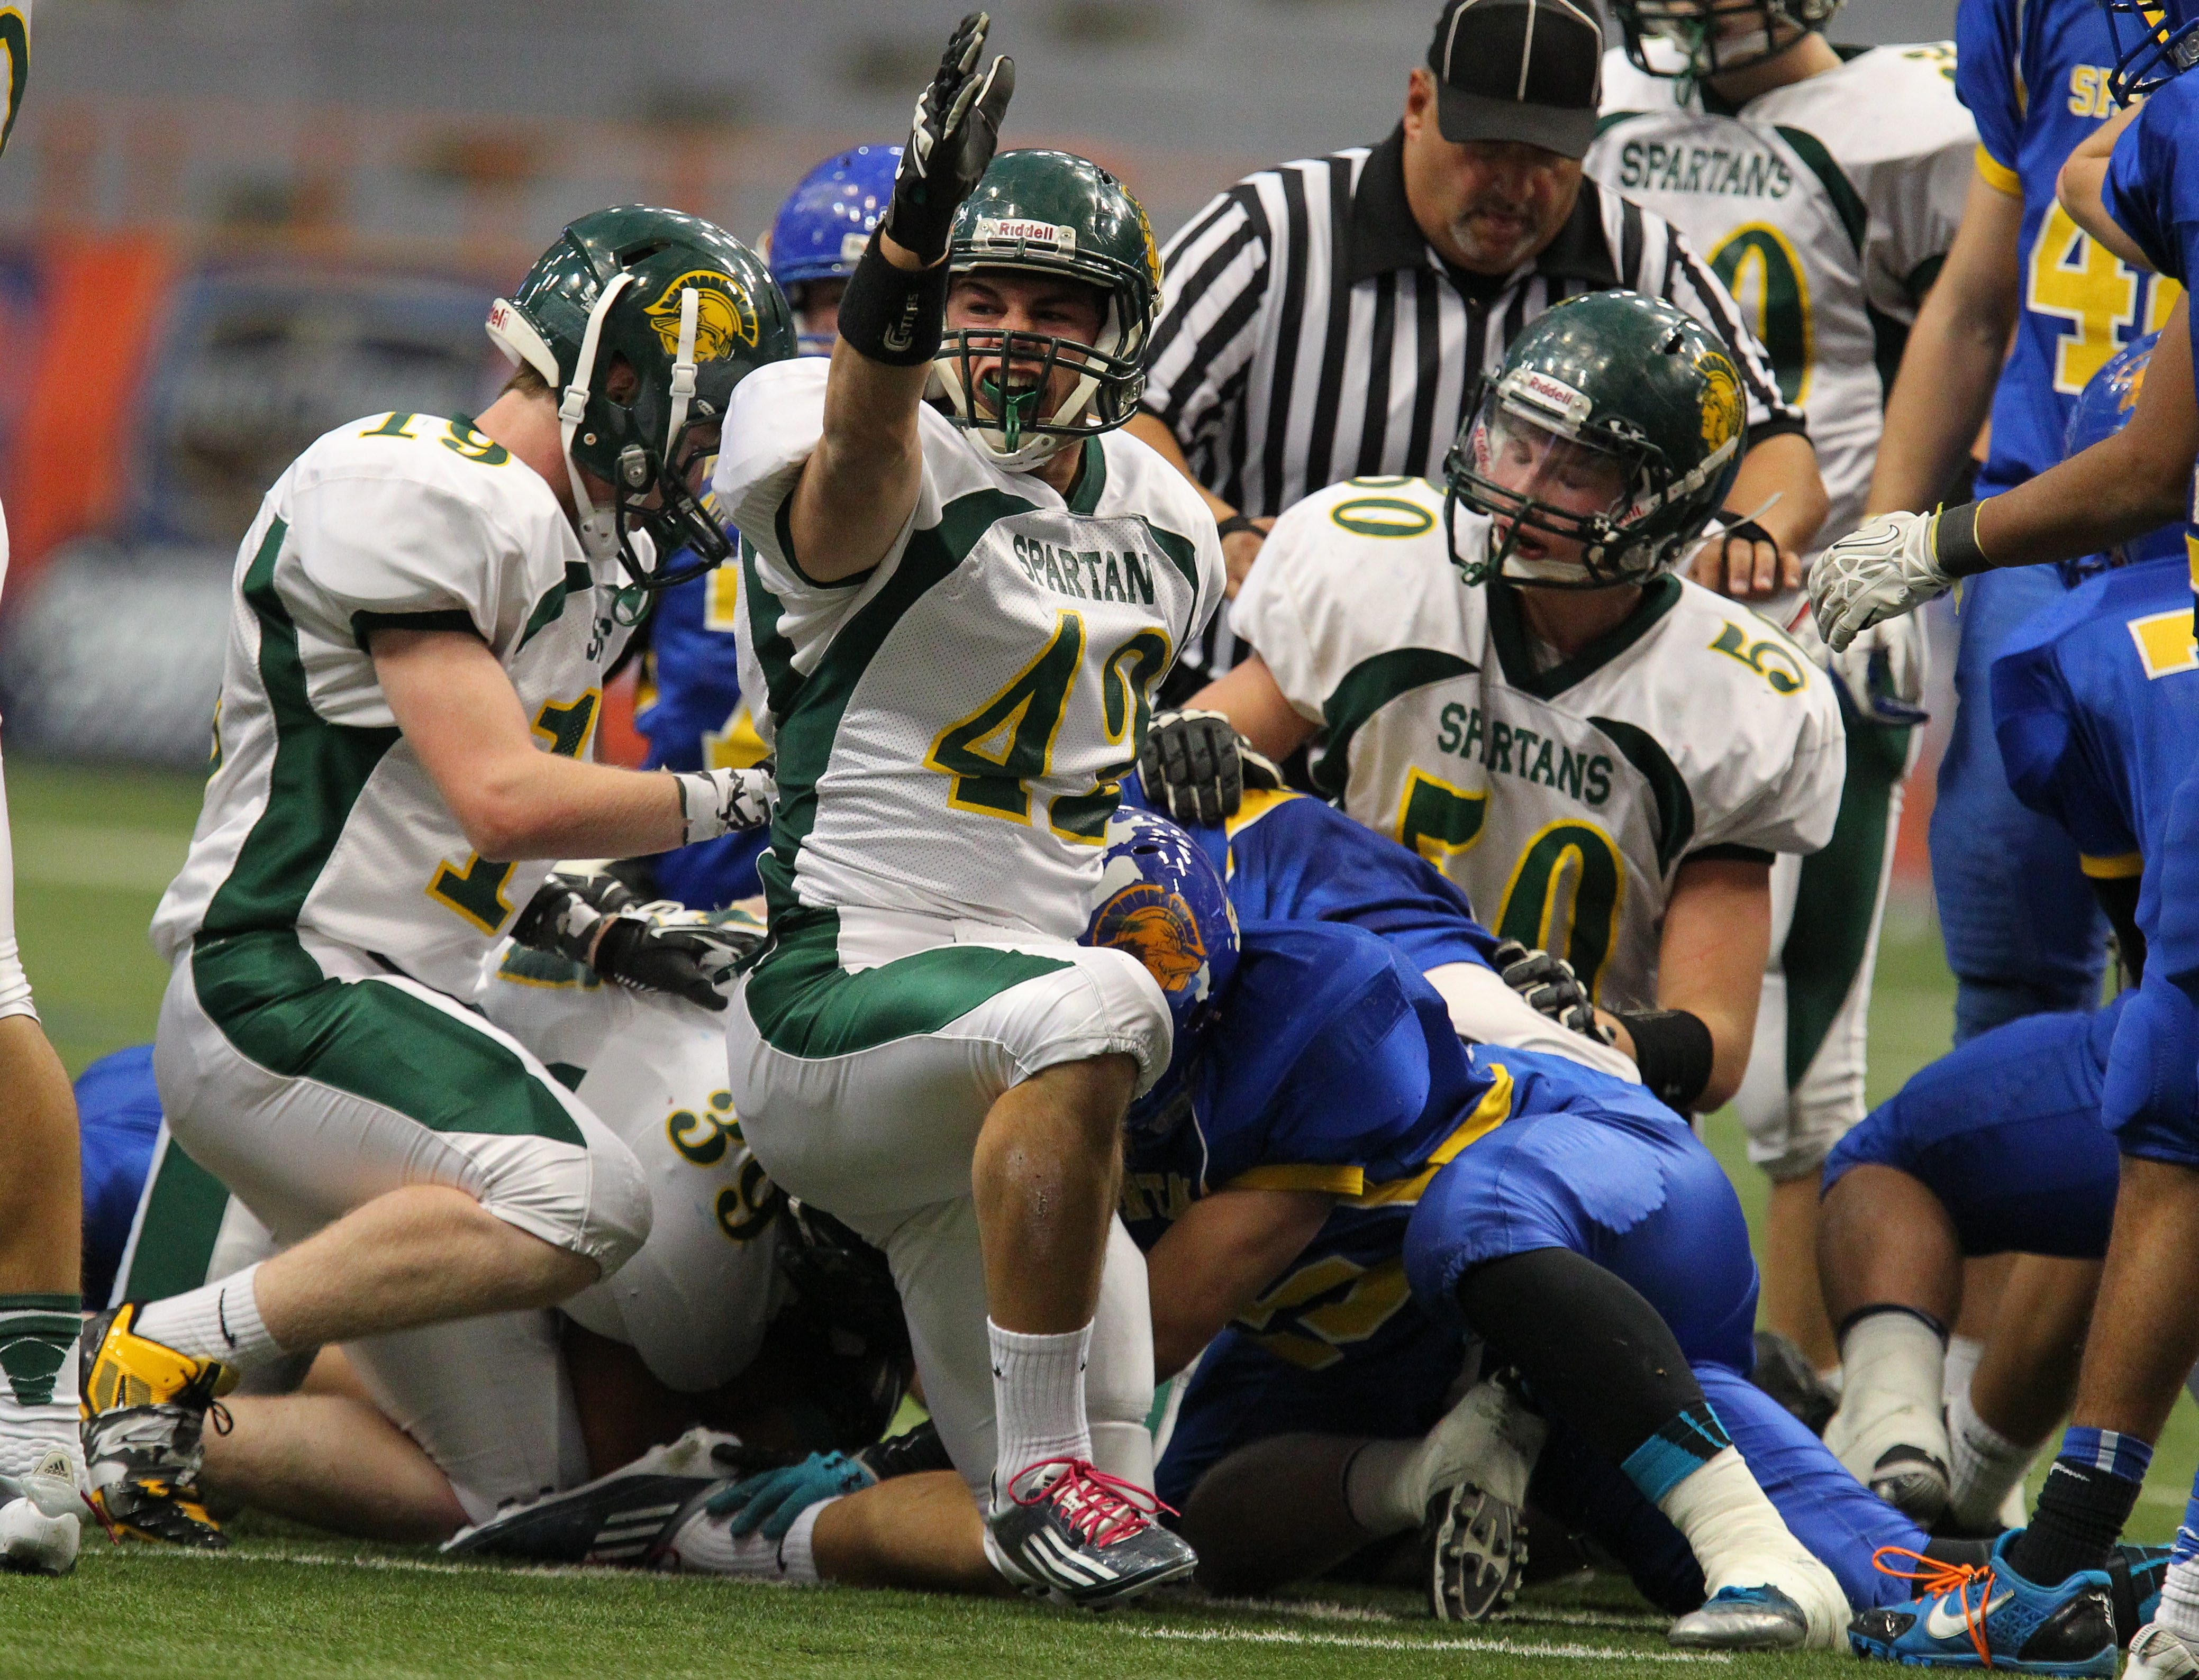 Jacob Ames, arm upraised, and Williamsville North came up a bit short in the Class A title game in Syracuse.